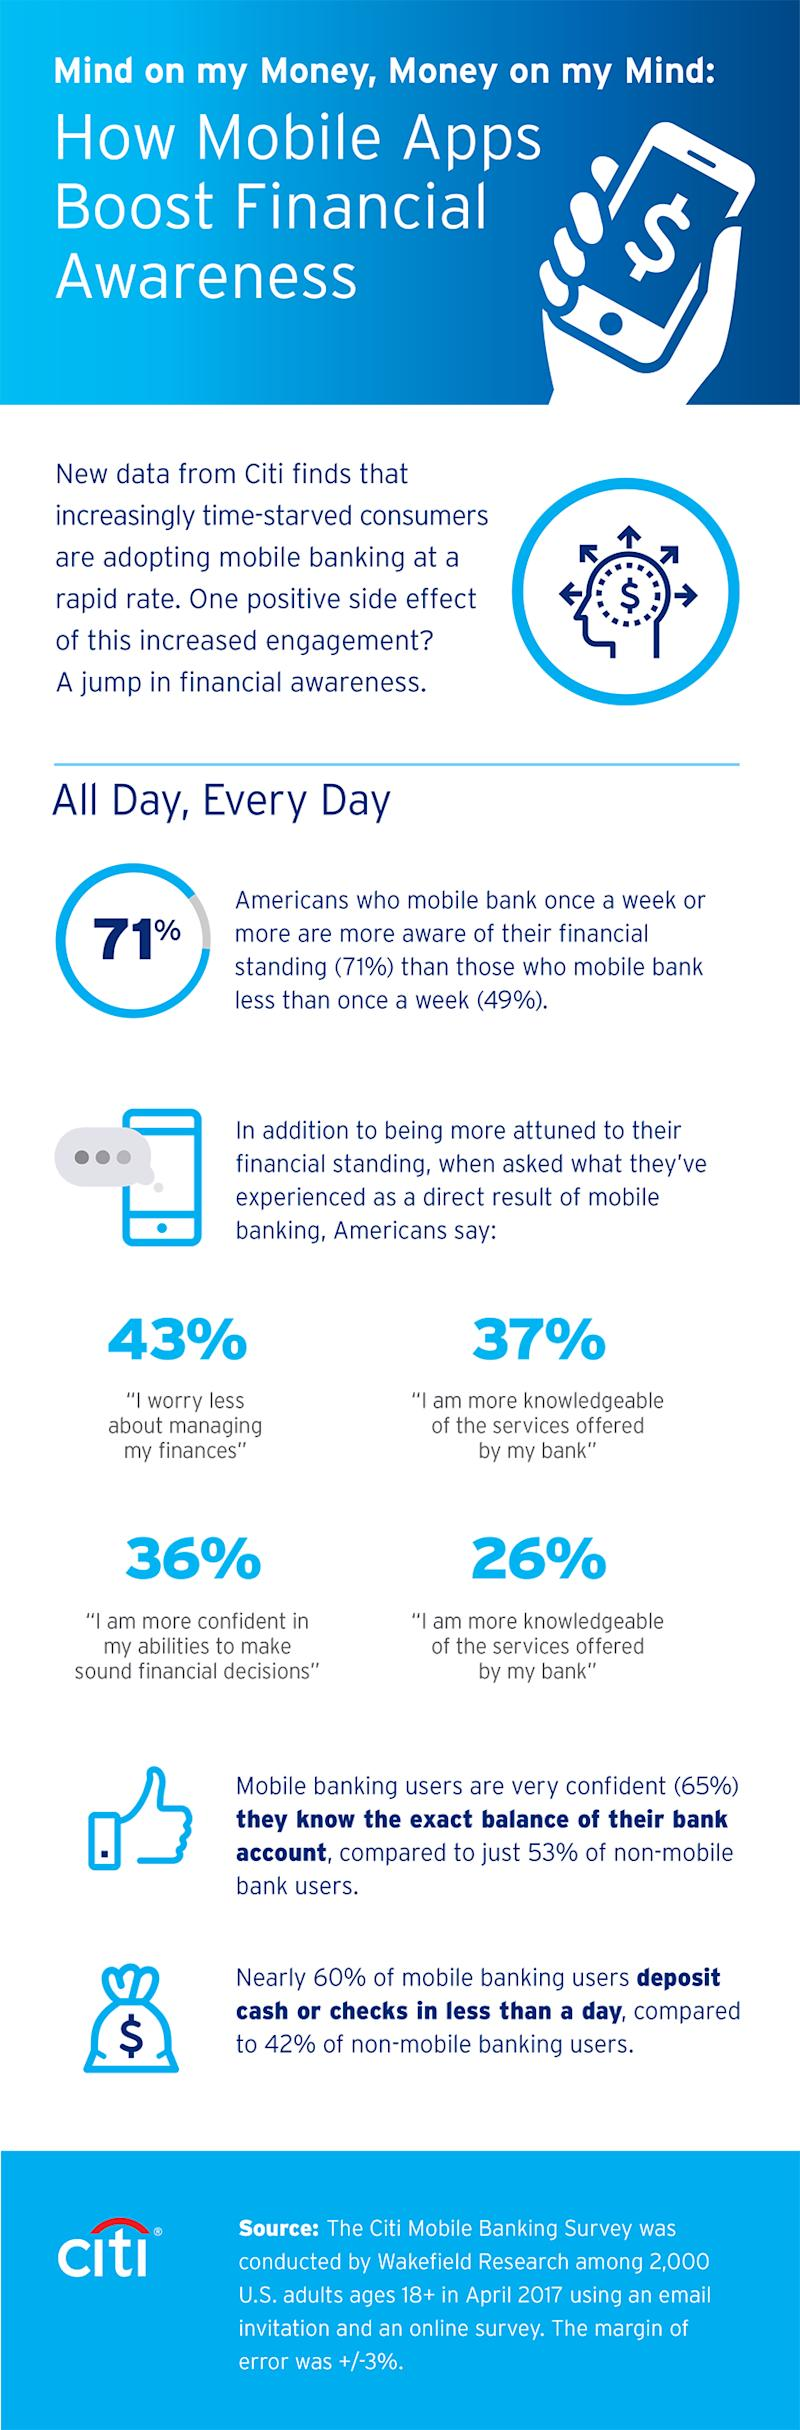 Citi's 2017 Mobile Banking Study illustrates how mobile banking apps help boost financial awareness.